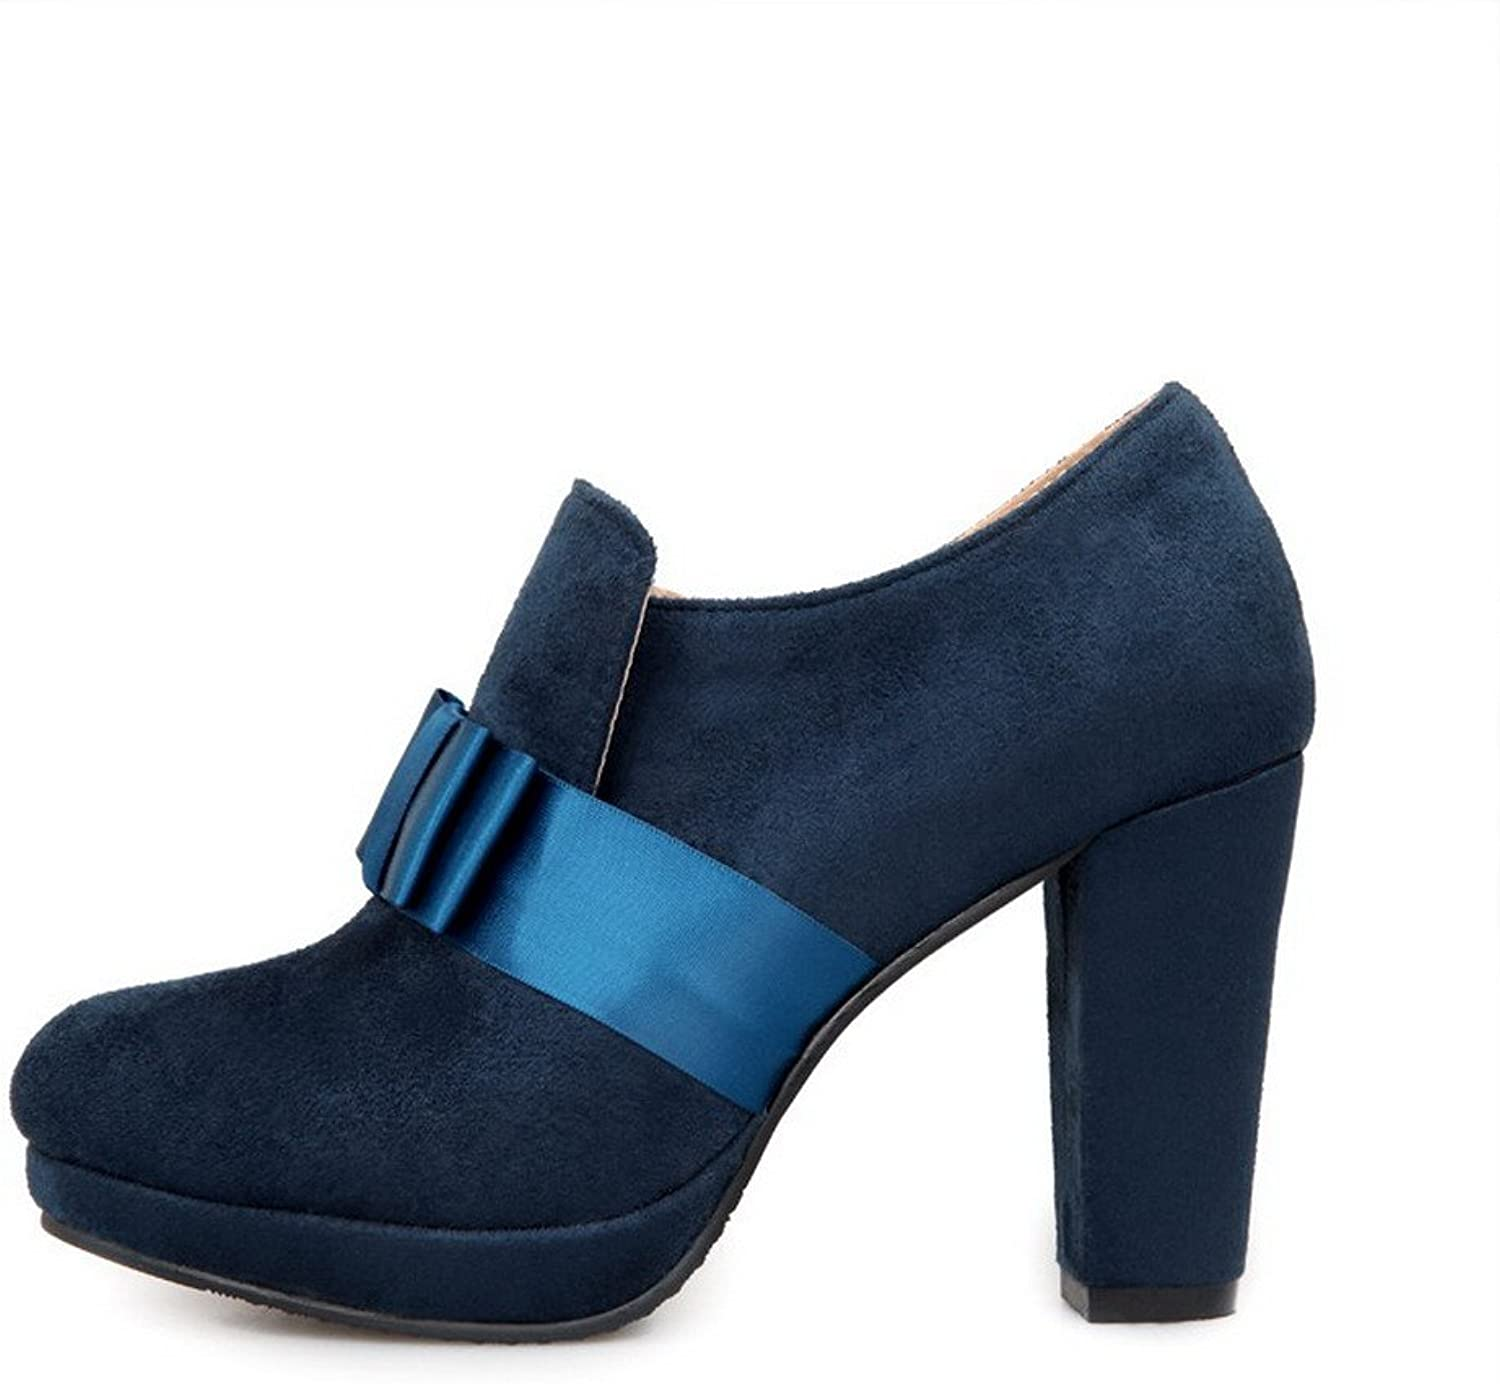 WeiPoot Women's Frosted Solid Closed-Toe Boots with Chunky Heels and Platform, bluee, 37